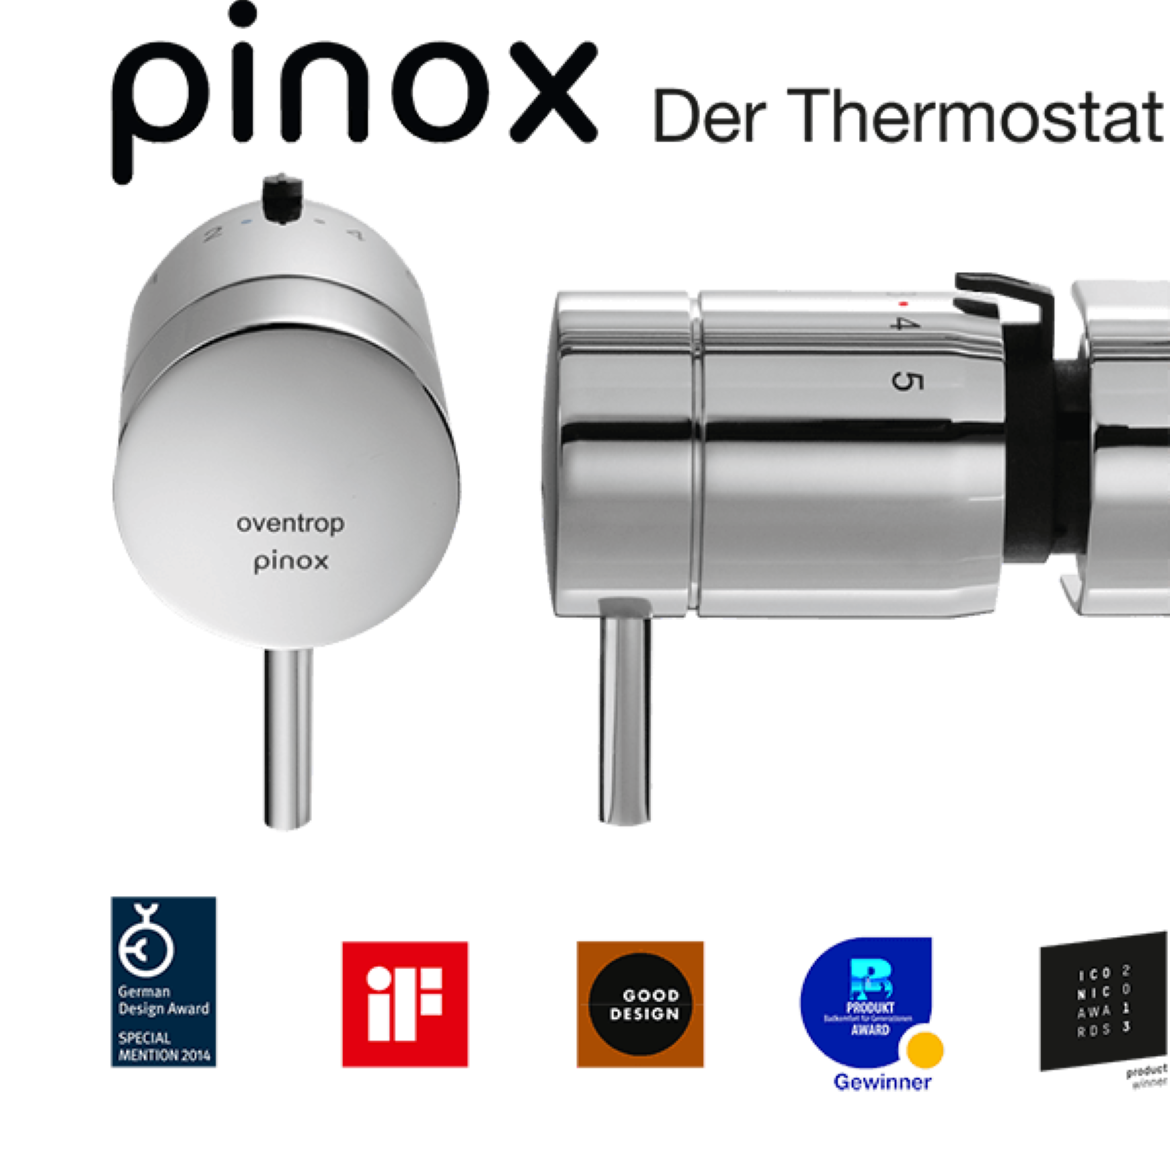 pinox - Der Thermostat